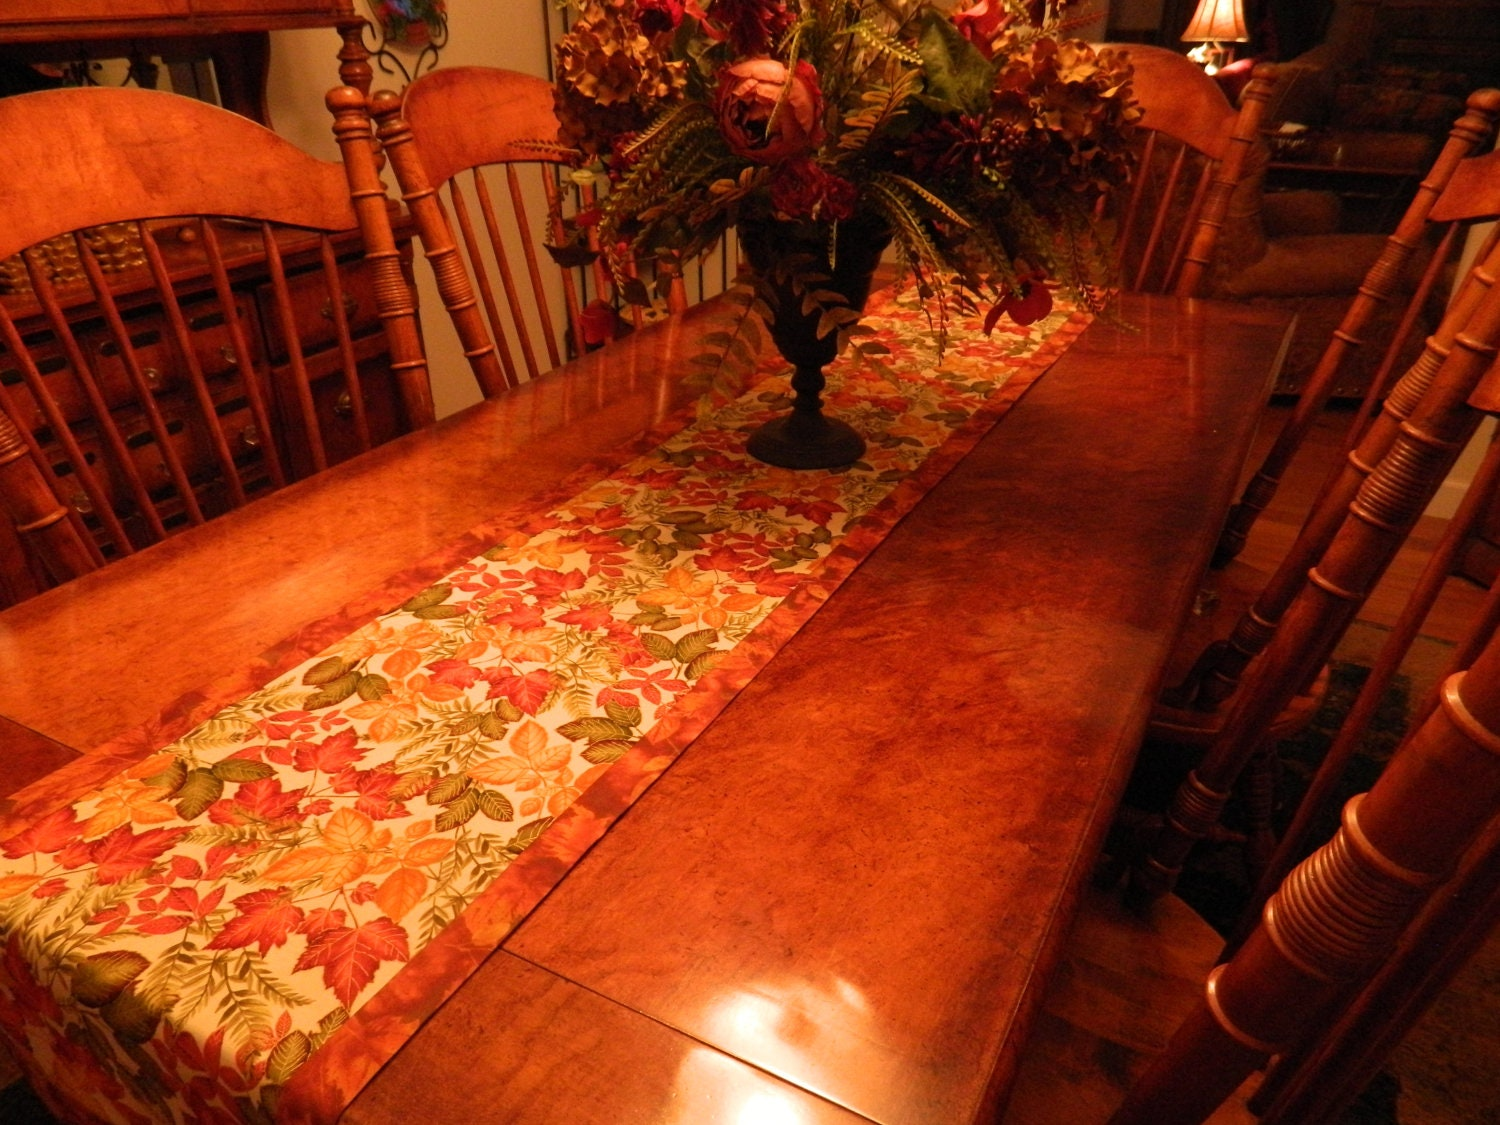 Fall etsy runner table  to Table Items on similar Thanksgiving Etsy Runner Leaves